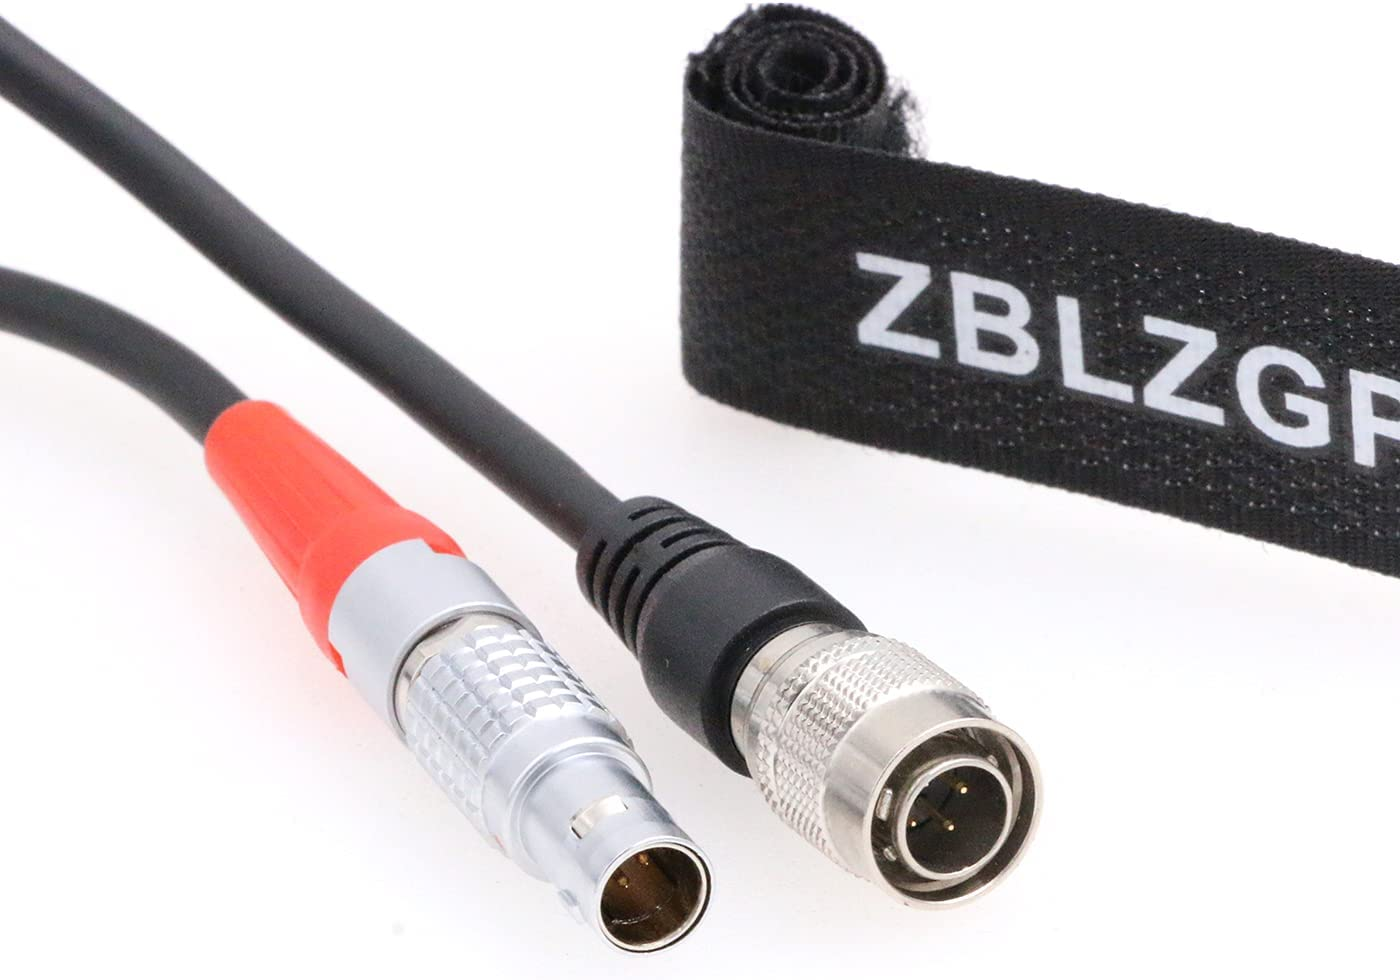 ZBLZGP 4 Save money Pin New sales Hirose Male to 0B Cable 5 Ambient Power ACL for